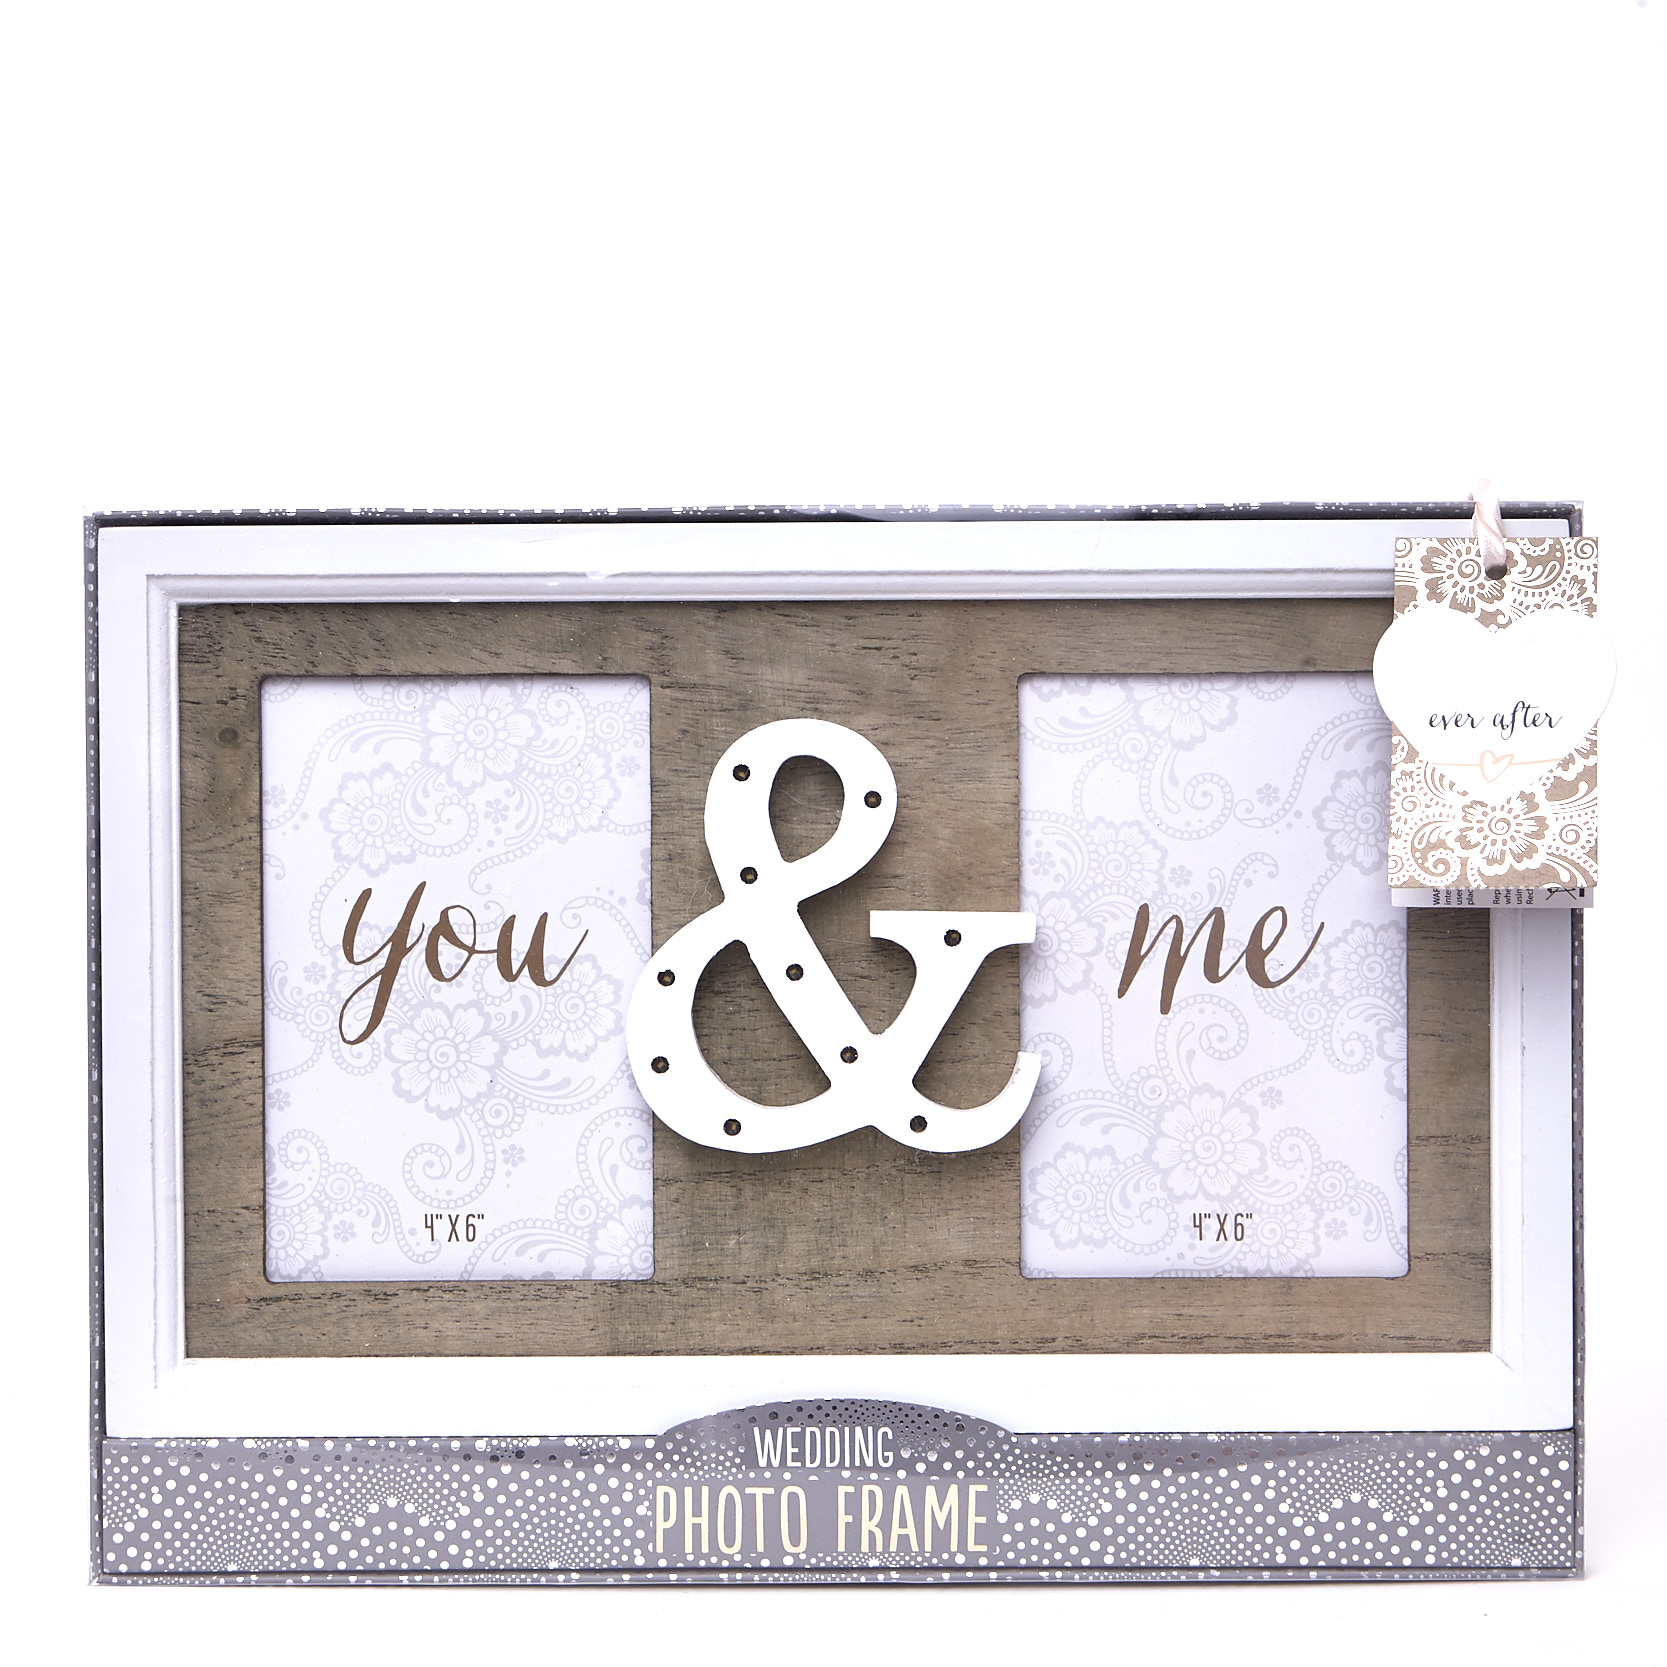 Wooden Light Up You & Me Photo Frame